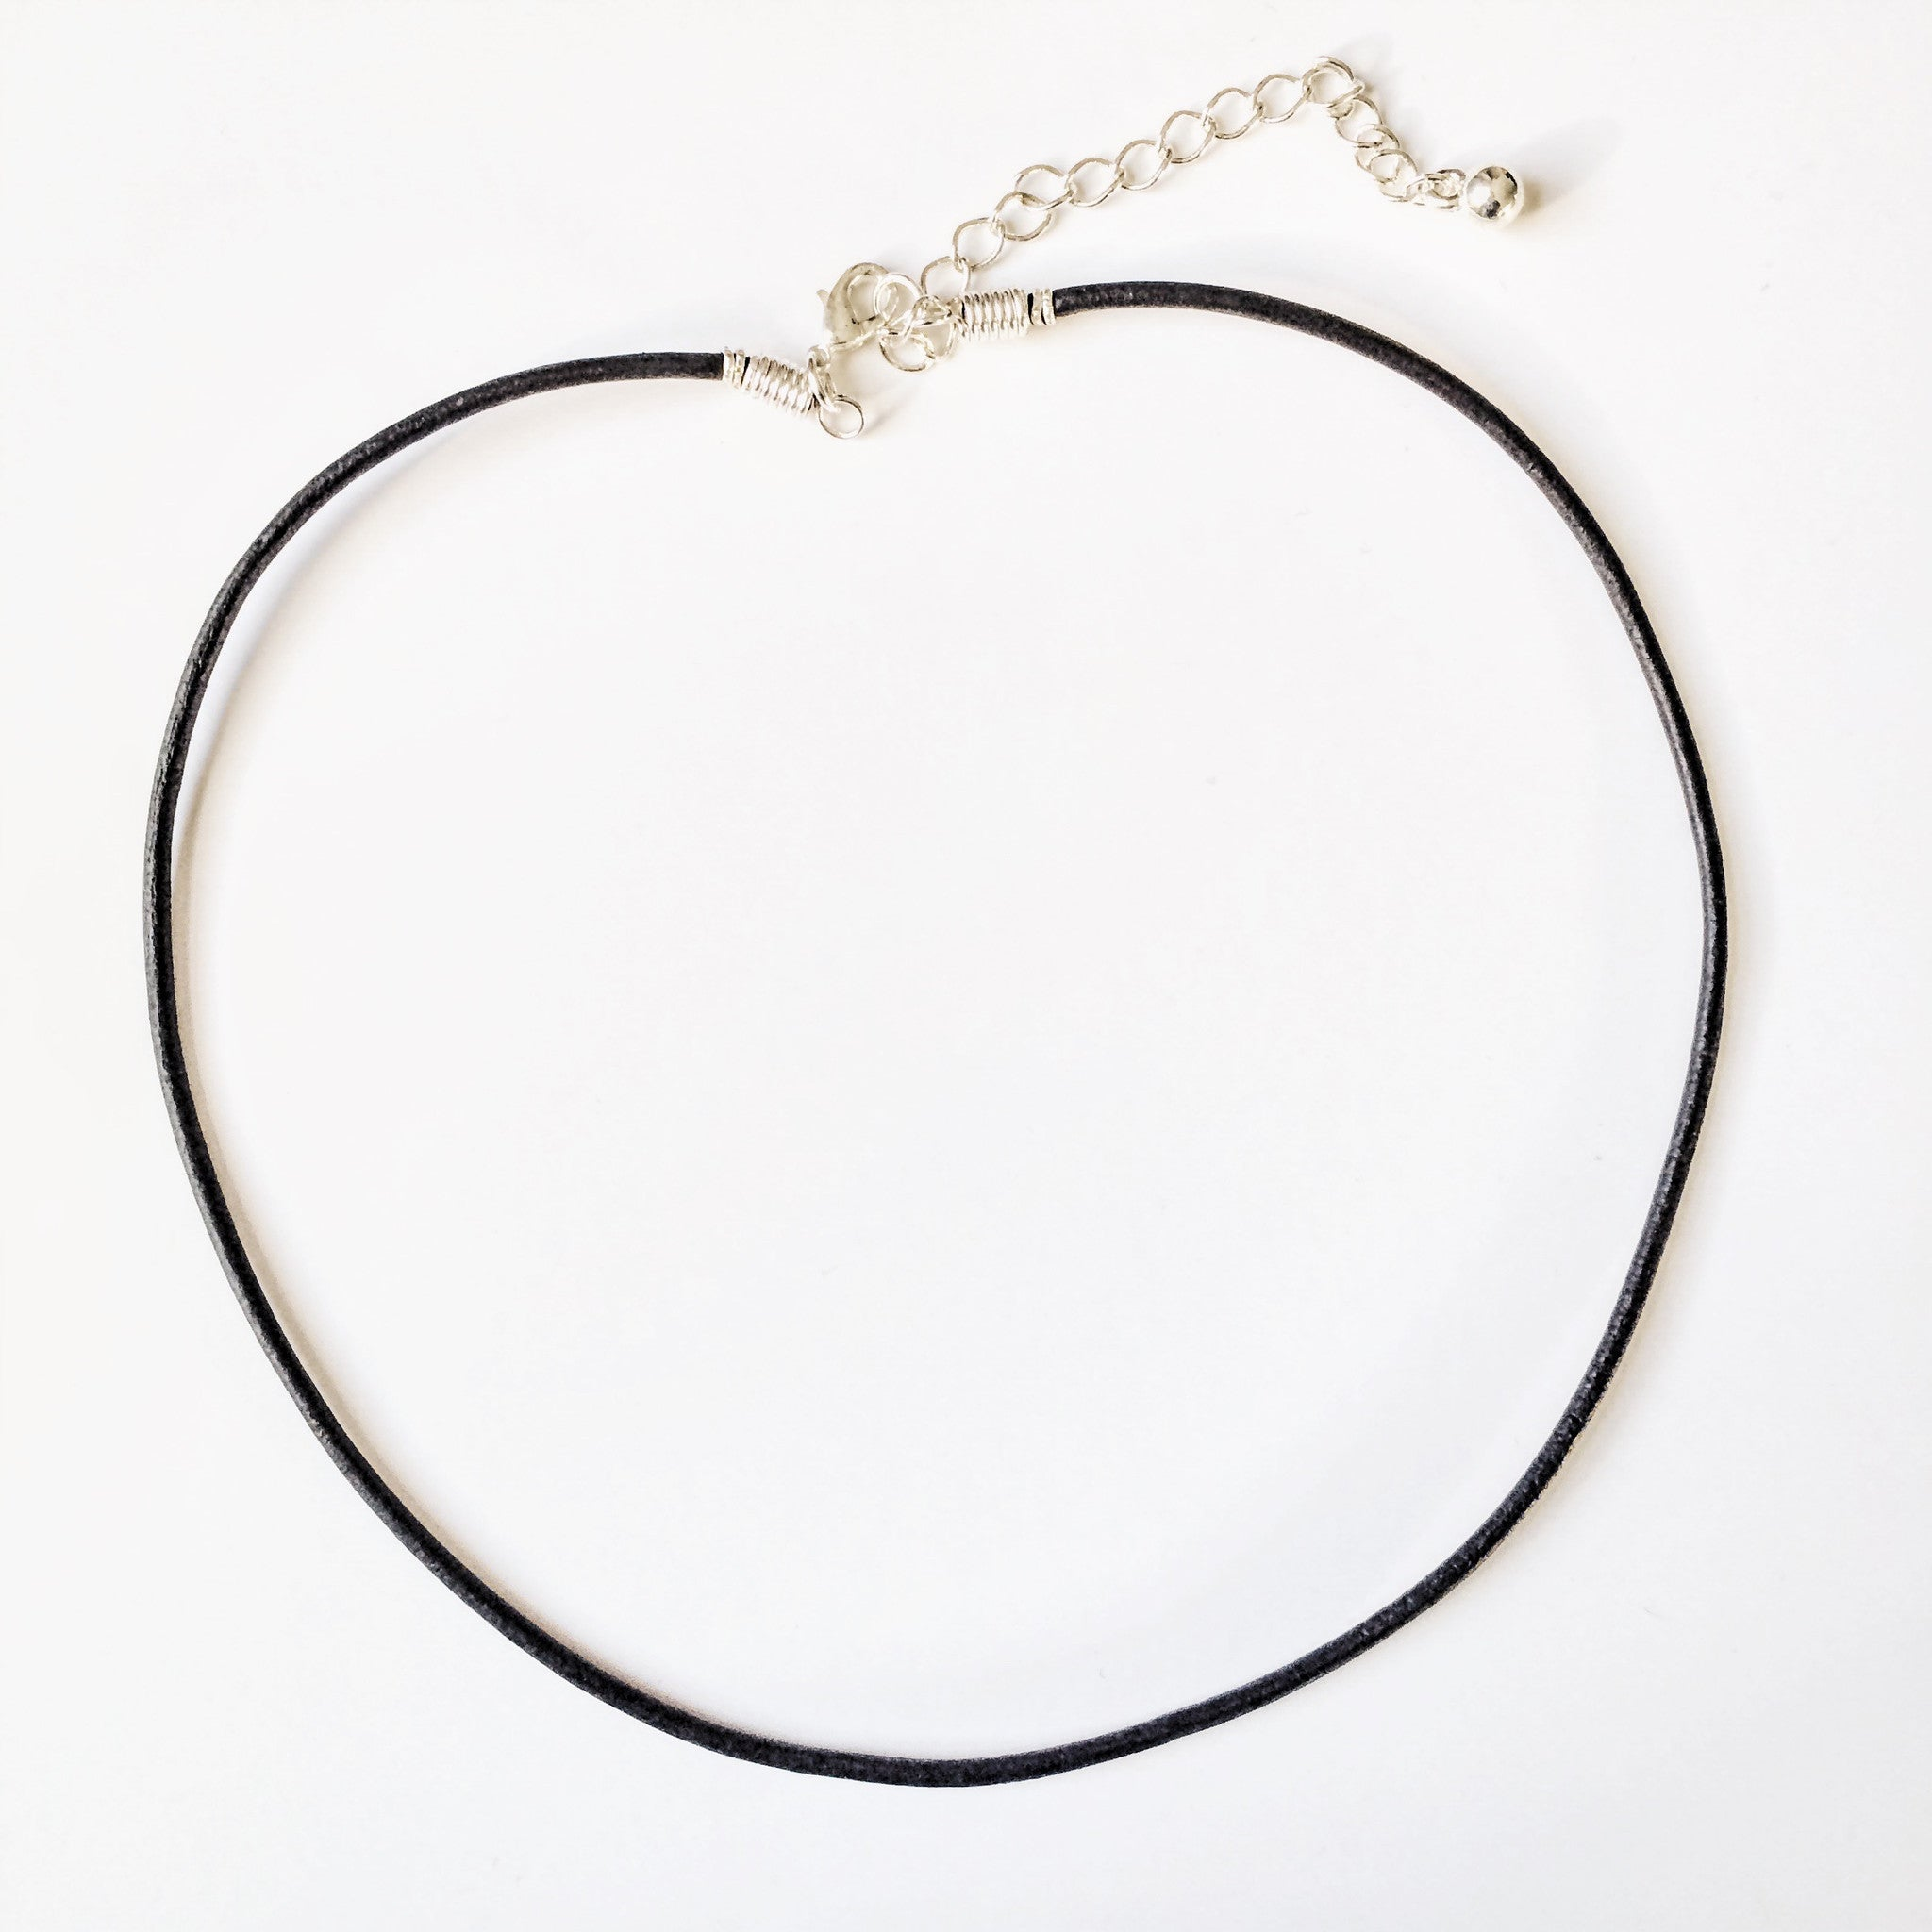 Plain Black Cord Choker